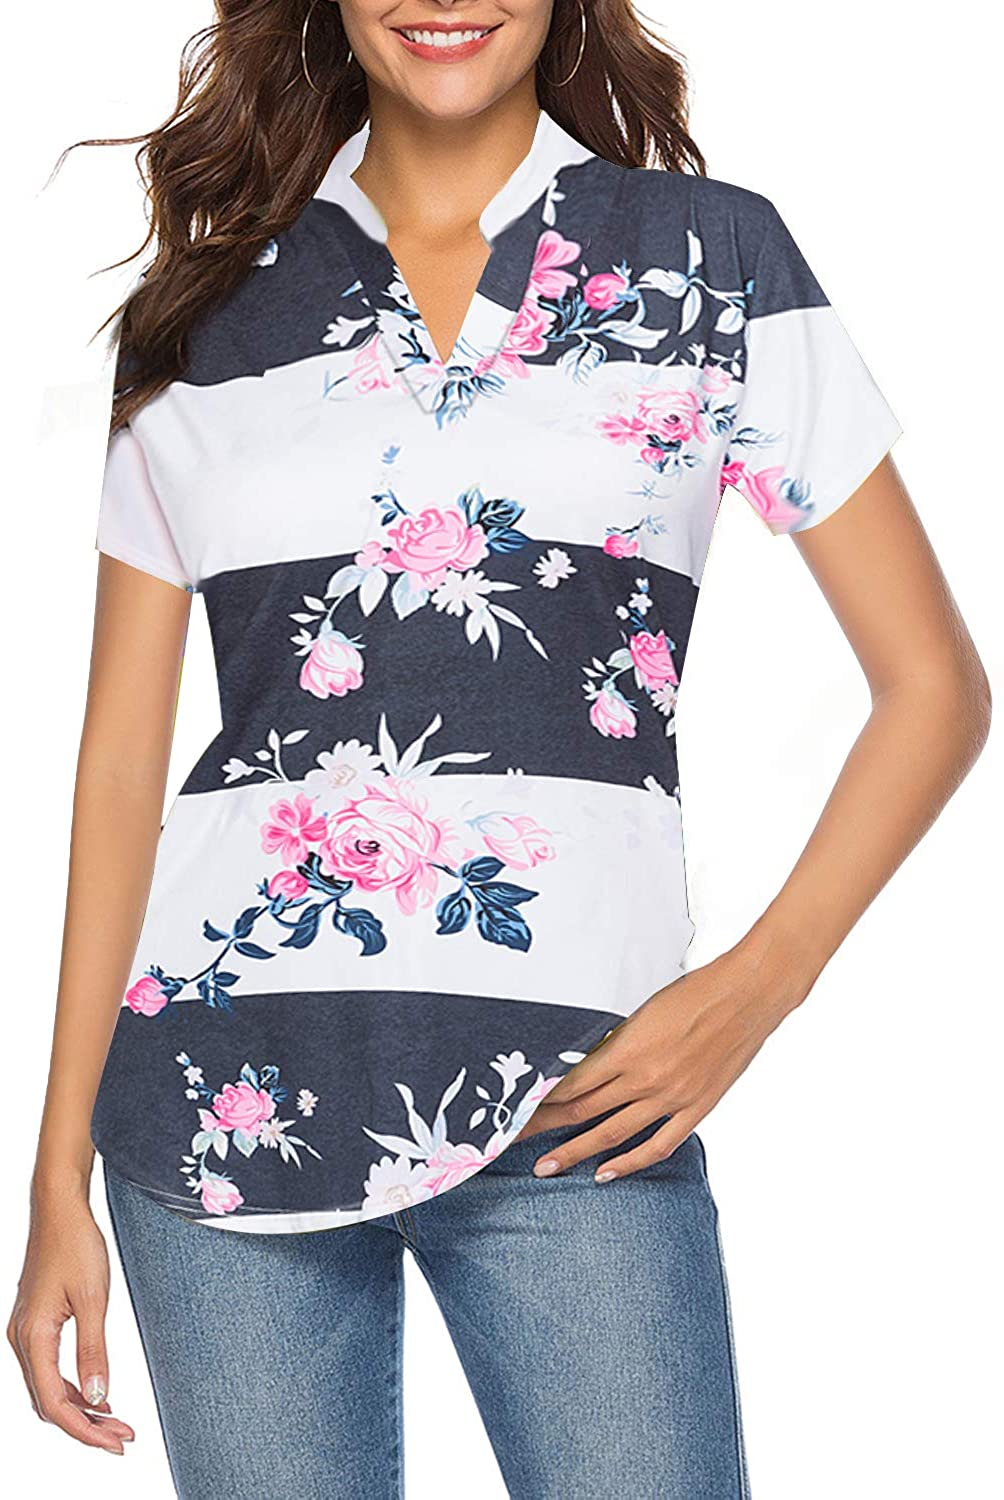 CEASIKERY Women's Short Sleeve Floral V Neck Tops Casual Tunic Blouse Loose Shirt 002